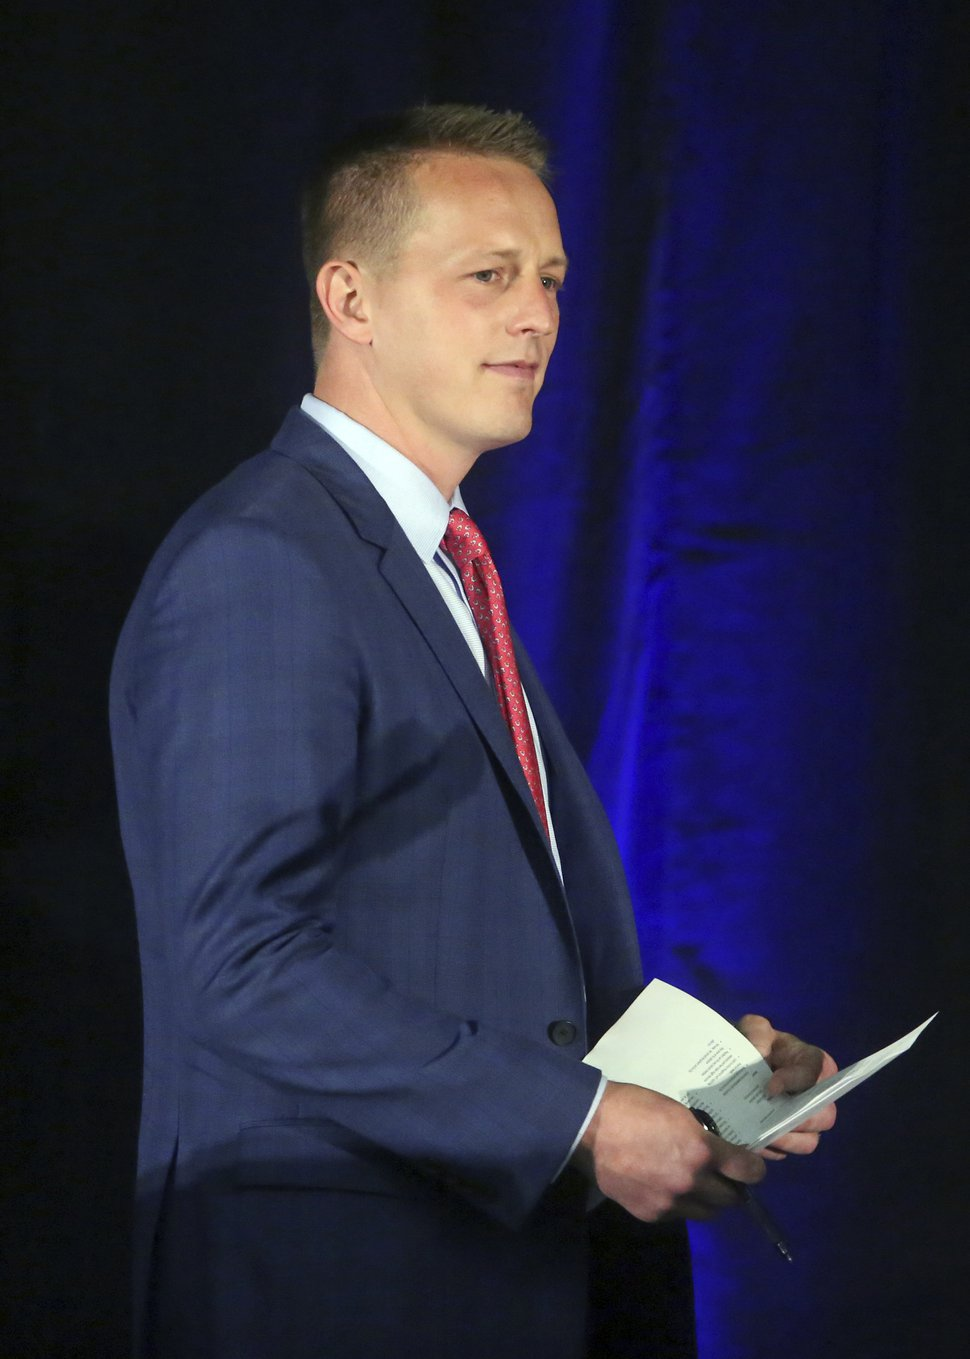 Republican candidate Tanner Ainge walks on stage during a debate at the Utah Valley Convention Center Friday, July 28, 2017, in Provo, Utah. Republican candidates, John Curtis, Chris Herrod and Ainge, vying for the seat vacated by U.S. Rep. Jason Chaffetz, debated on topics ranging from healthcare to religious freedom. (AP Photo/Rick Bowmer)